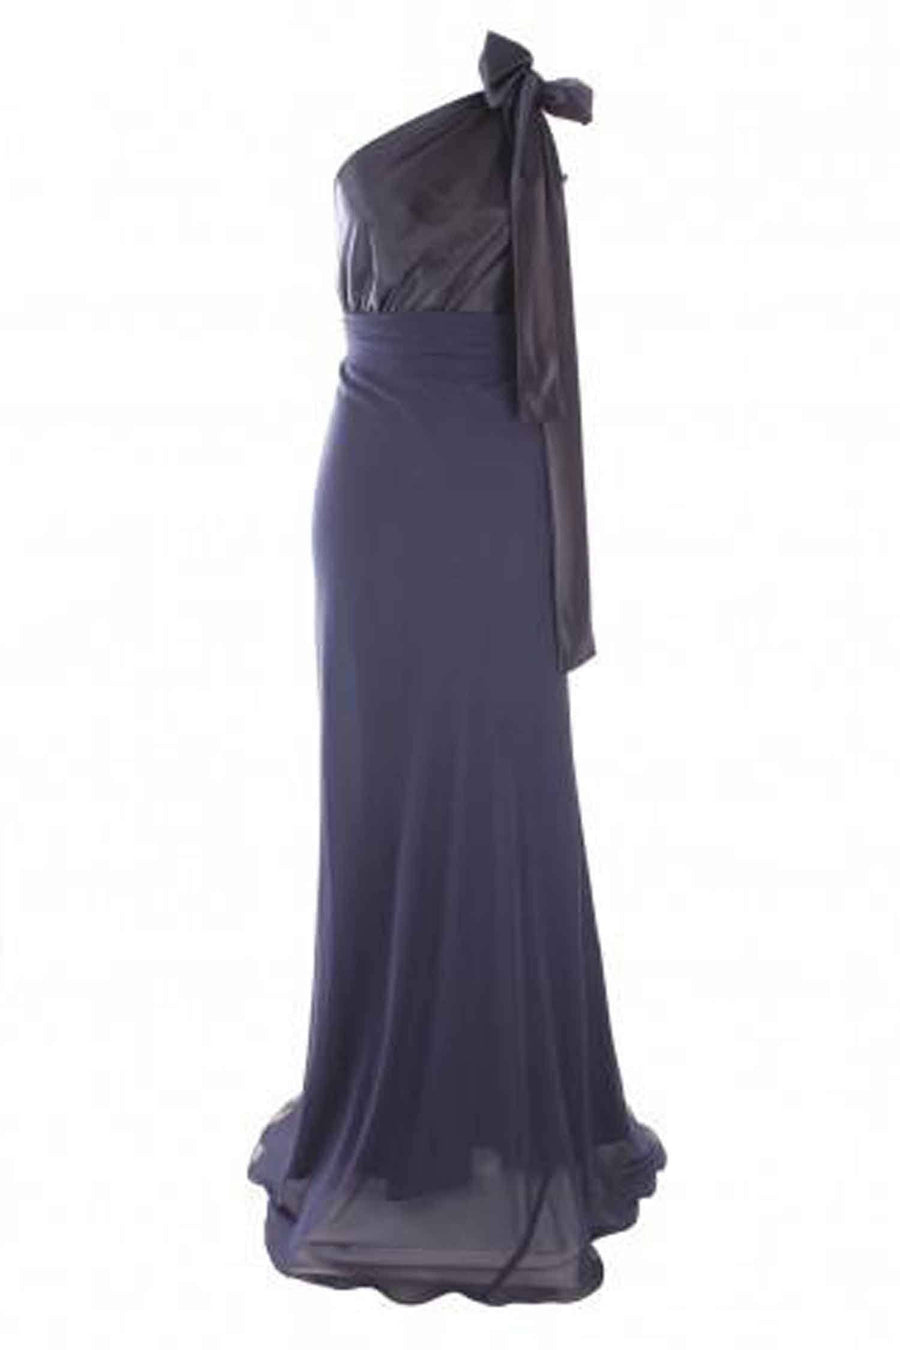 2-tone-chelsea-in-navy-poly-satin-skirt-in-poly-georgette-by-lucy-laurita